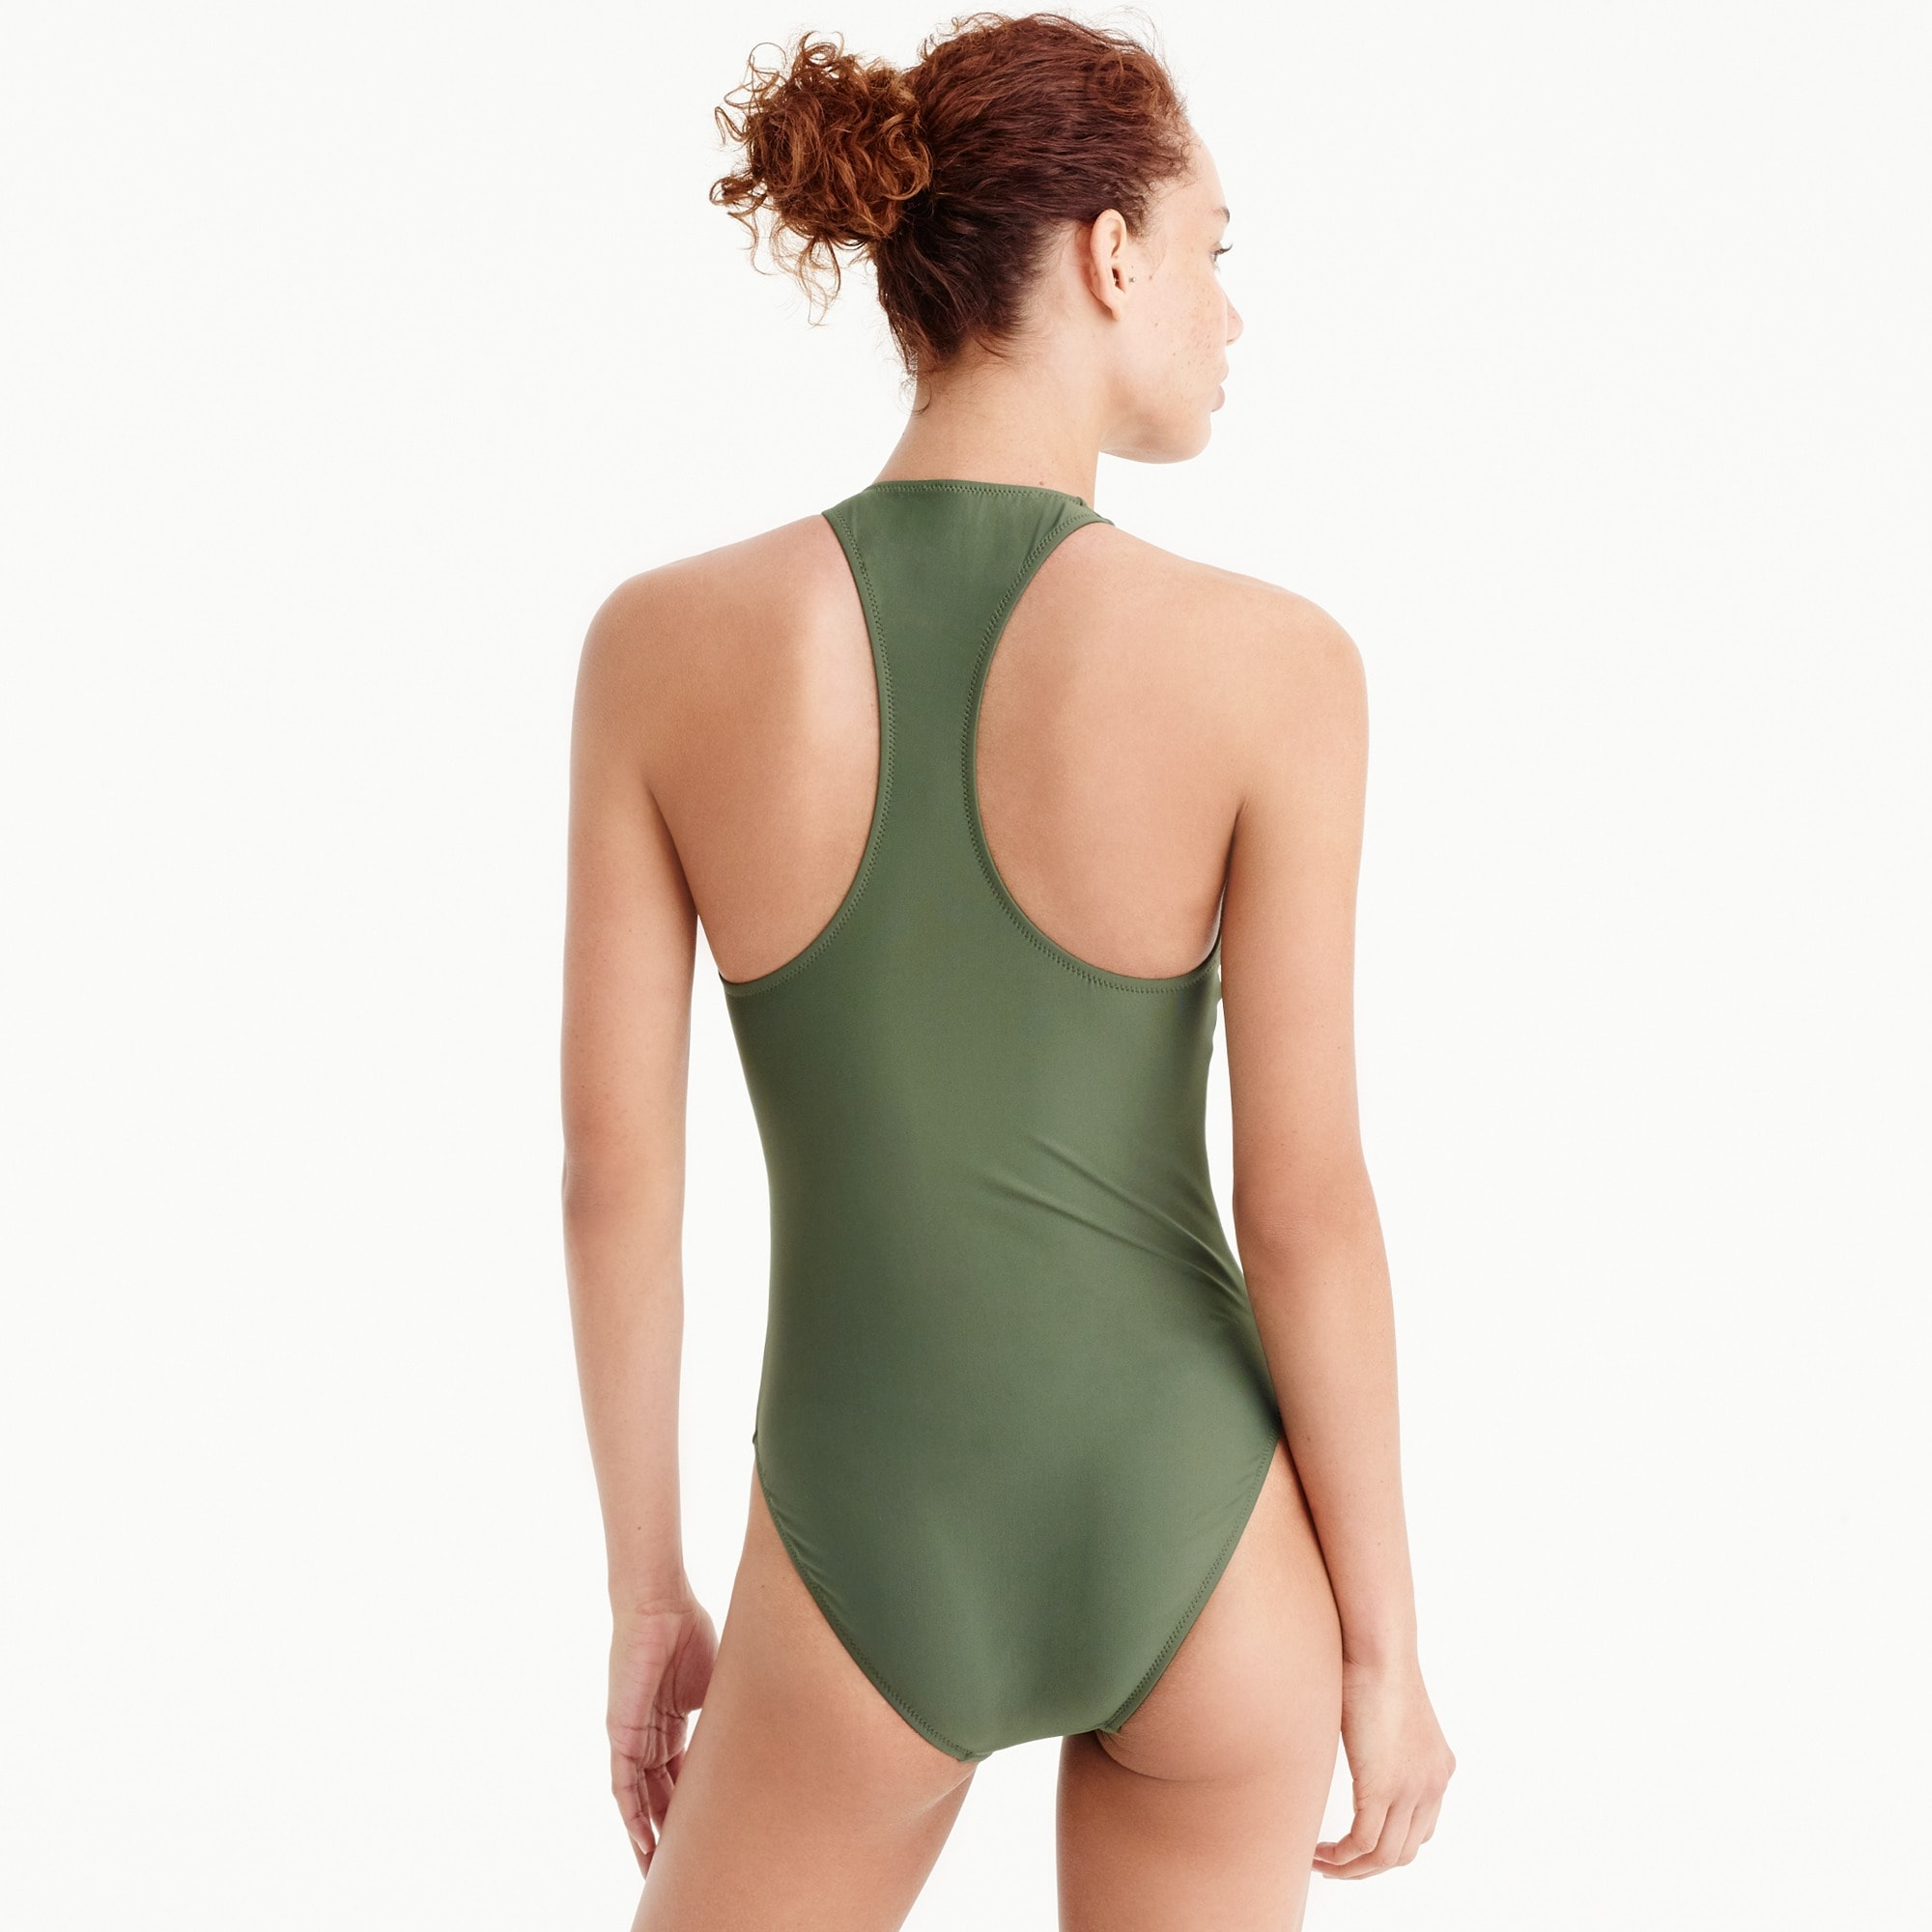 Image 3 for Zip-front one-piece swimsuit